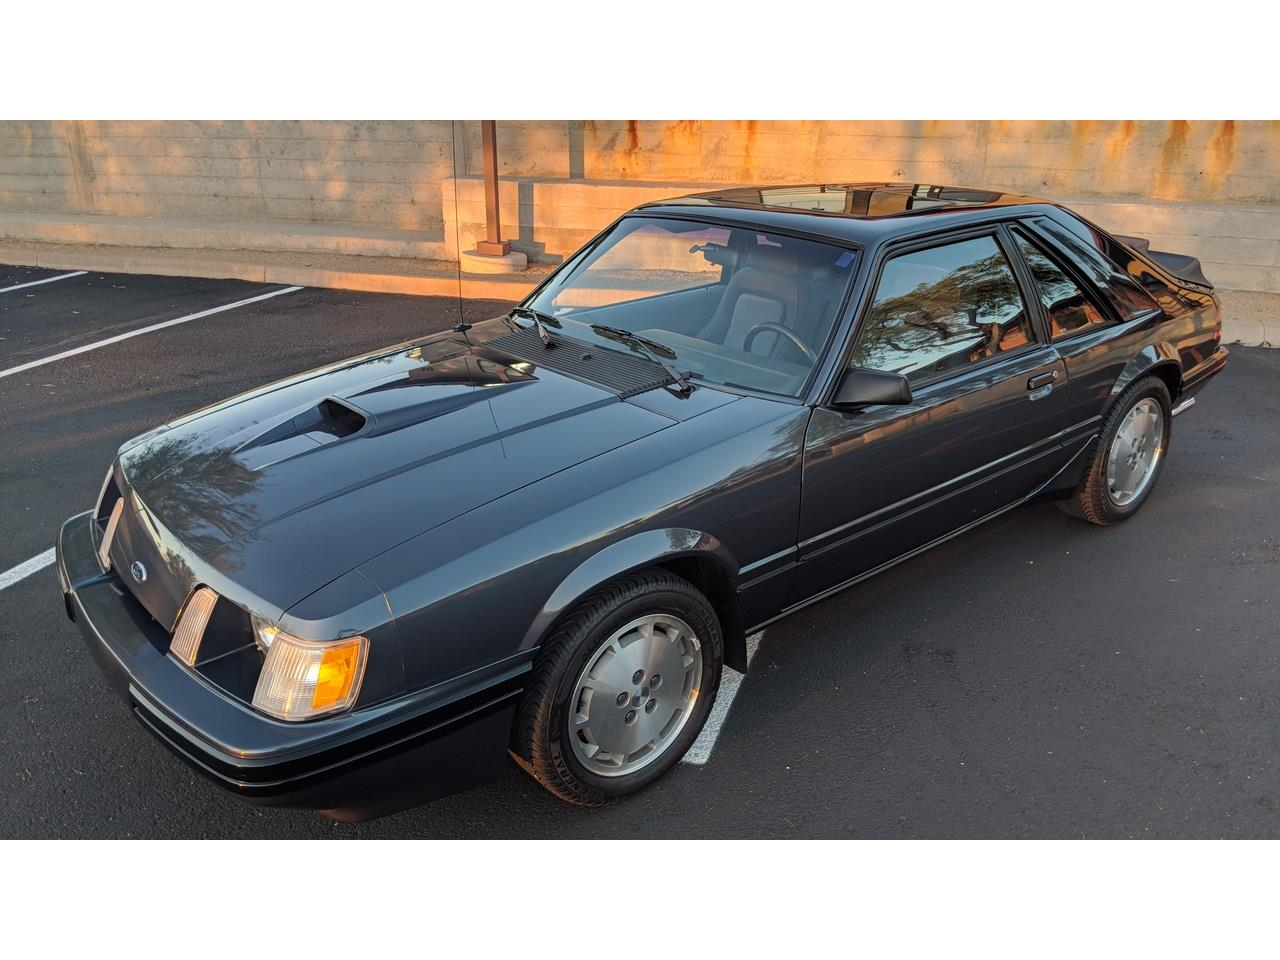 Large Picture of '84 Ford Mustang SVO - $15,800.00 Offered by a Private Seller - MXZ6